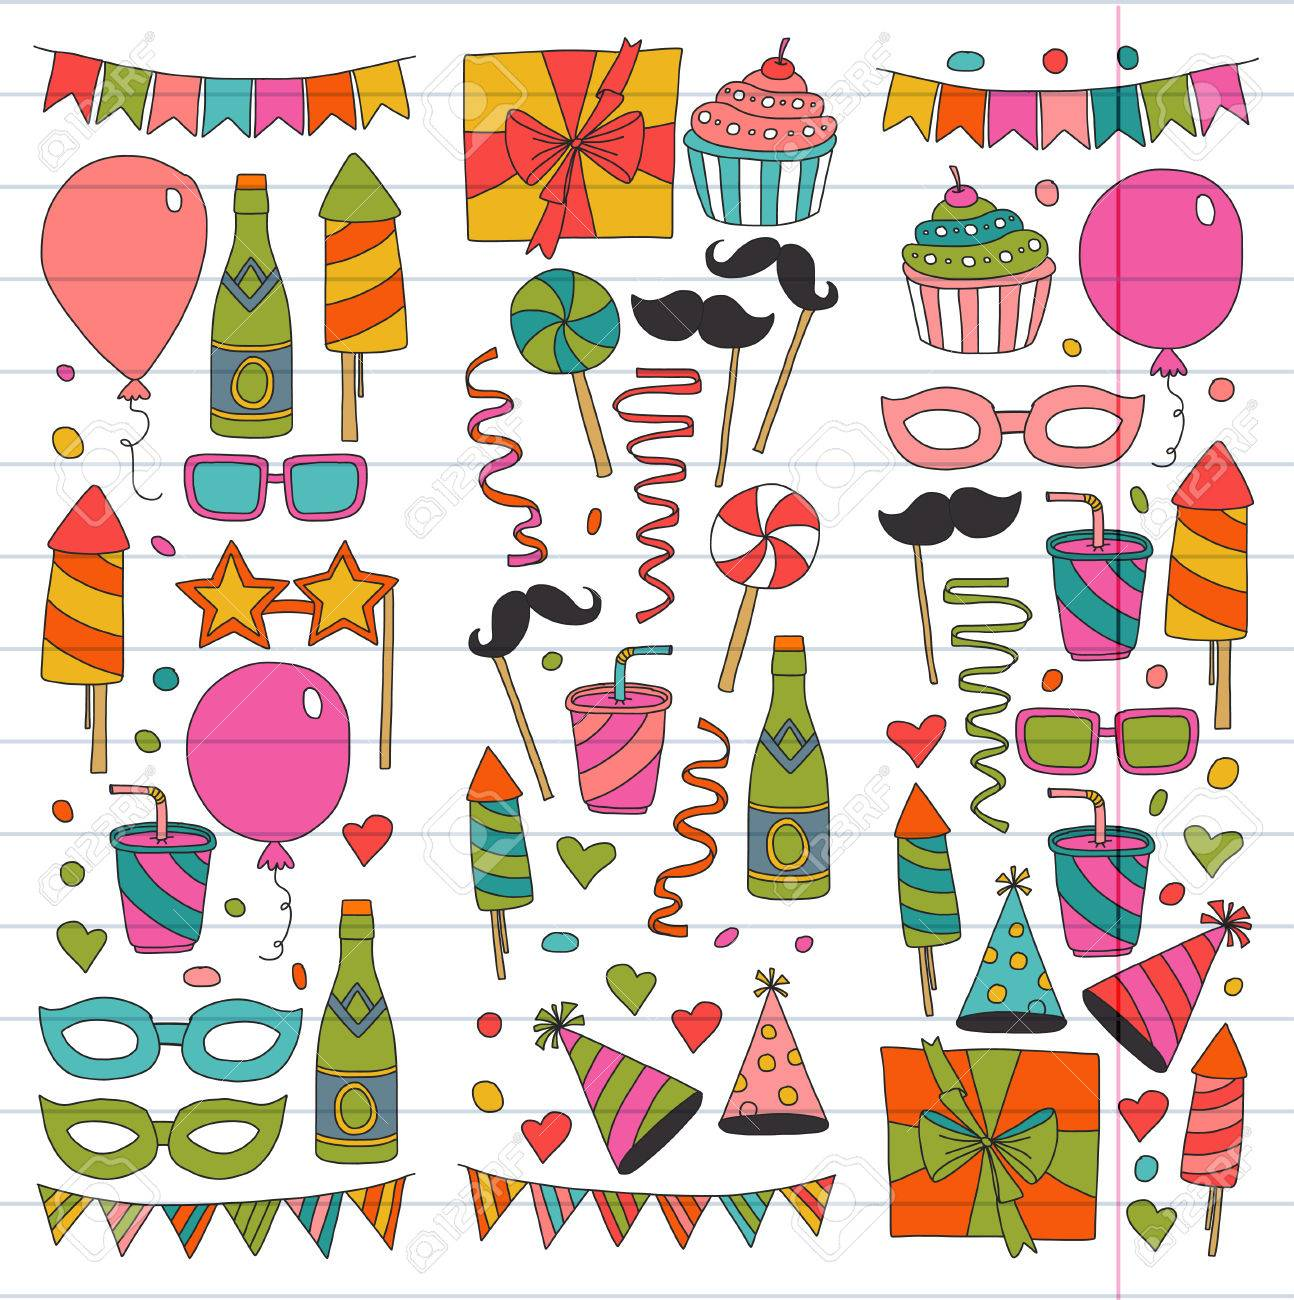 birthday party pictures for drawing ; 85697030-kids-party-children-drawing-birthday-party-with-balloons-mask-gifts-food-cupcakes-doodle-set-with-ve